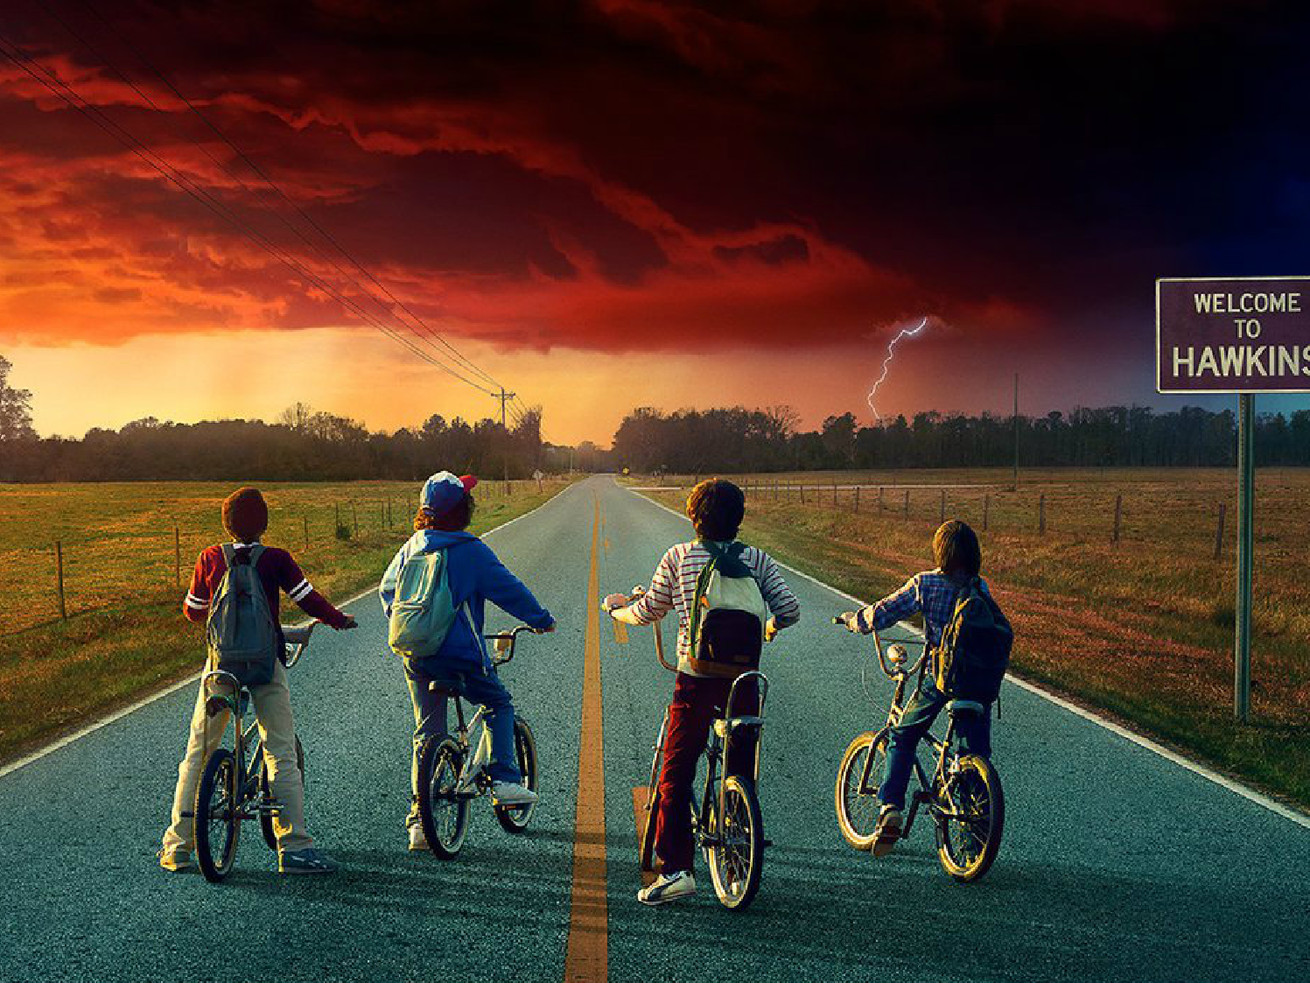 """""""Stranger Things 2"""" promo image of four boys on bikes, stopped on a paved road, looking at a threatening cloud on the horizon"""